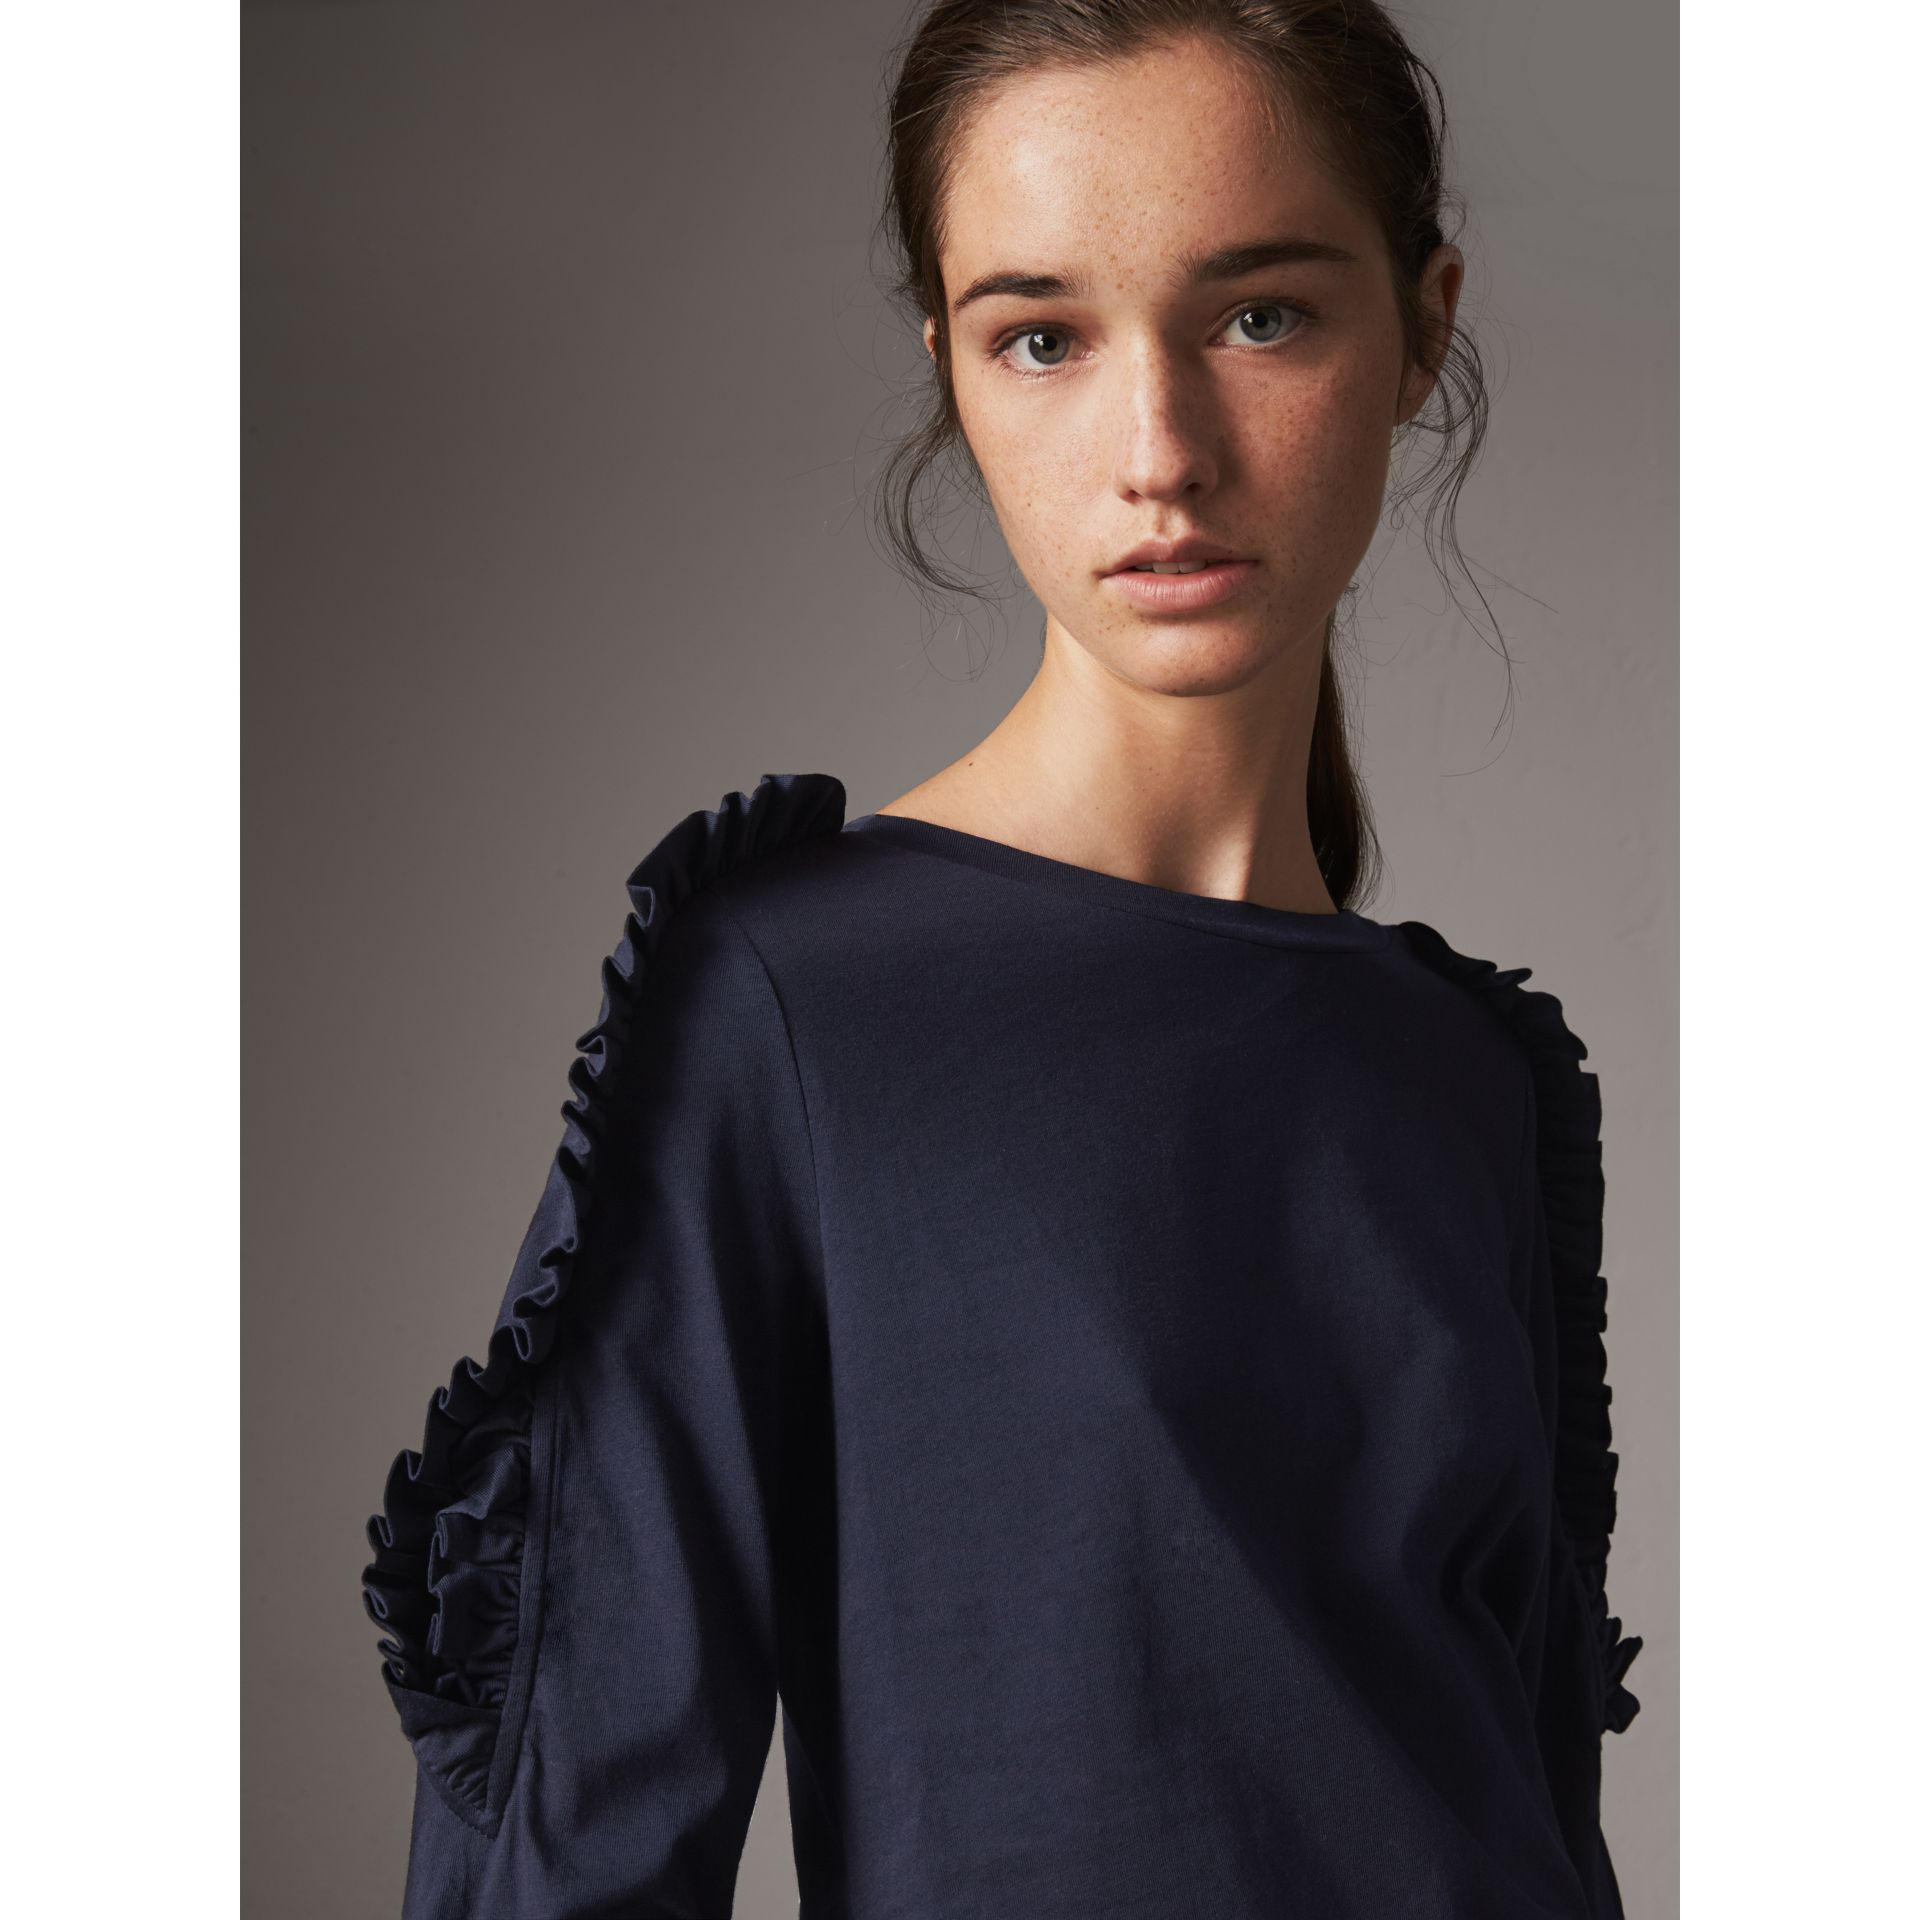 Ruffle Detail Cotton Top in True Navy - Women | Burberry - gallery image 2